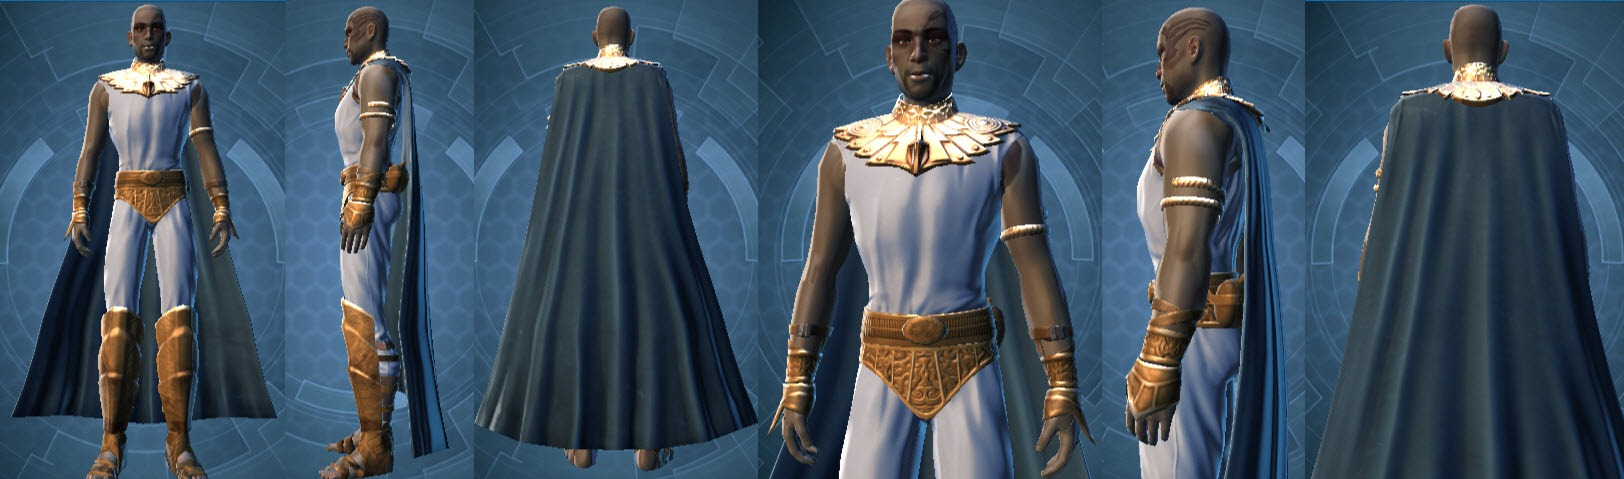 swtor-gav-daragon's-armor-set-wingman-dogfighter's-starfighter-pack-male